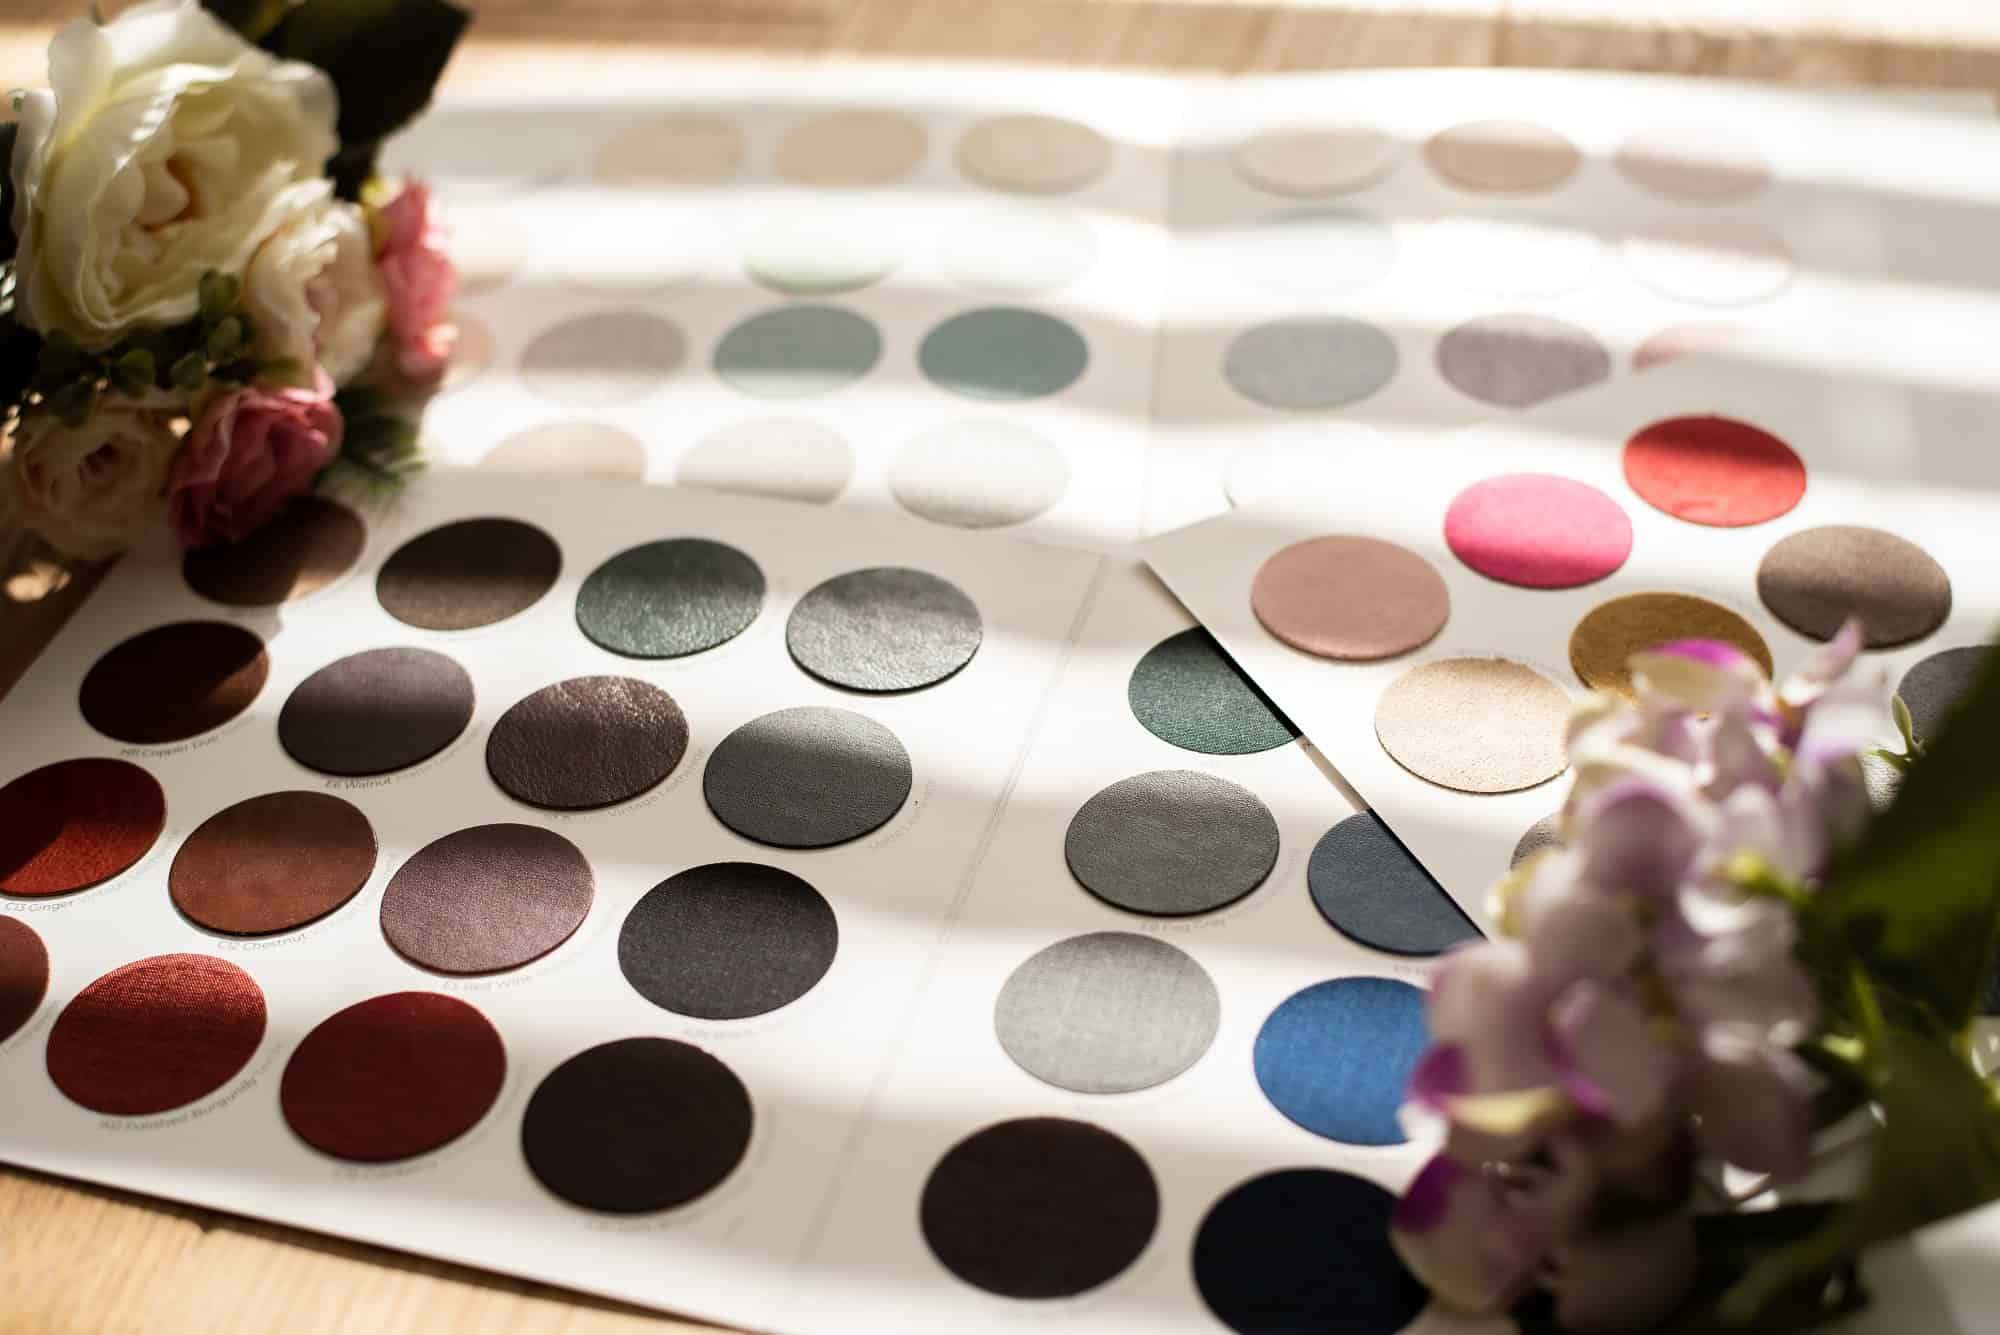 Material samples for albums and frames for your wedding